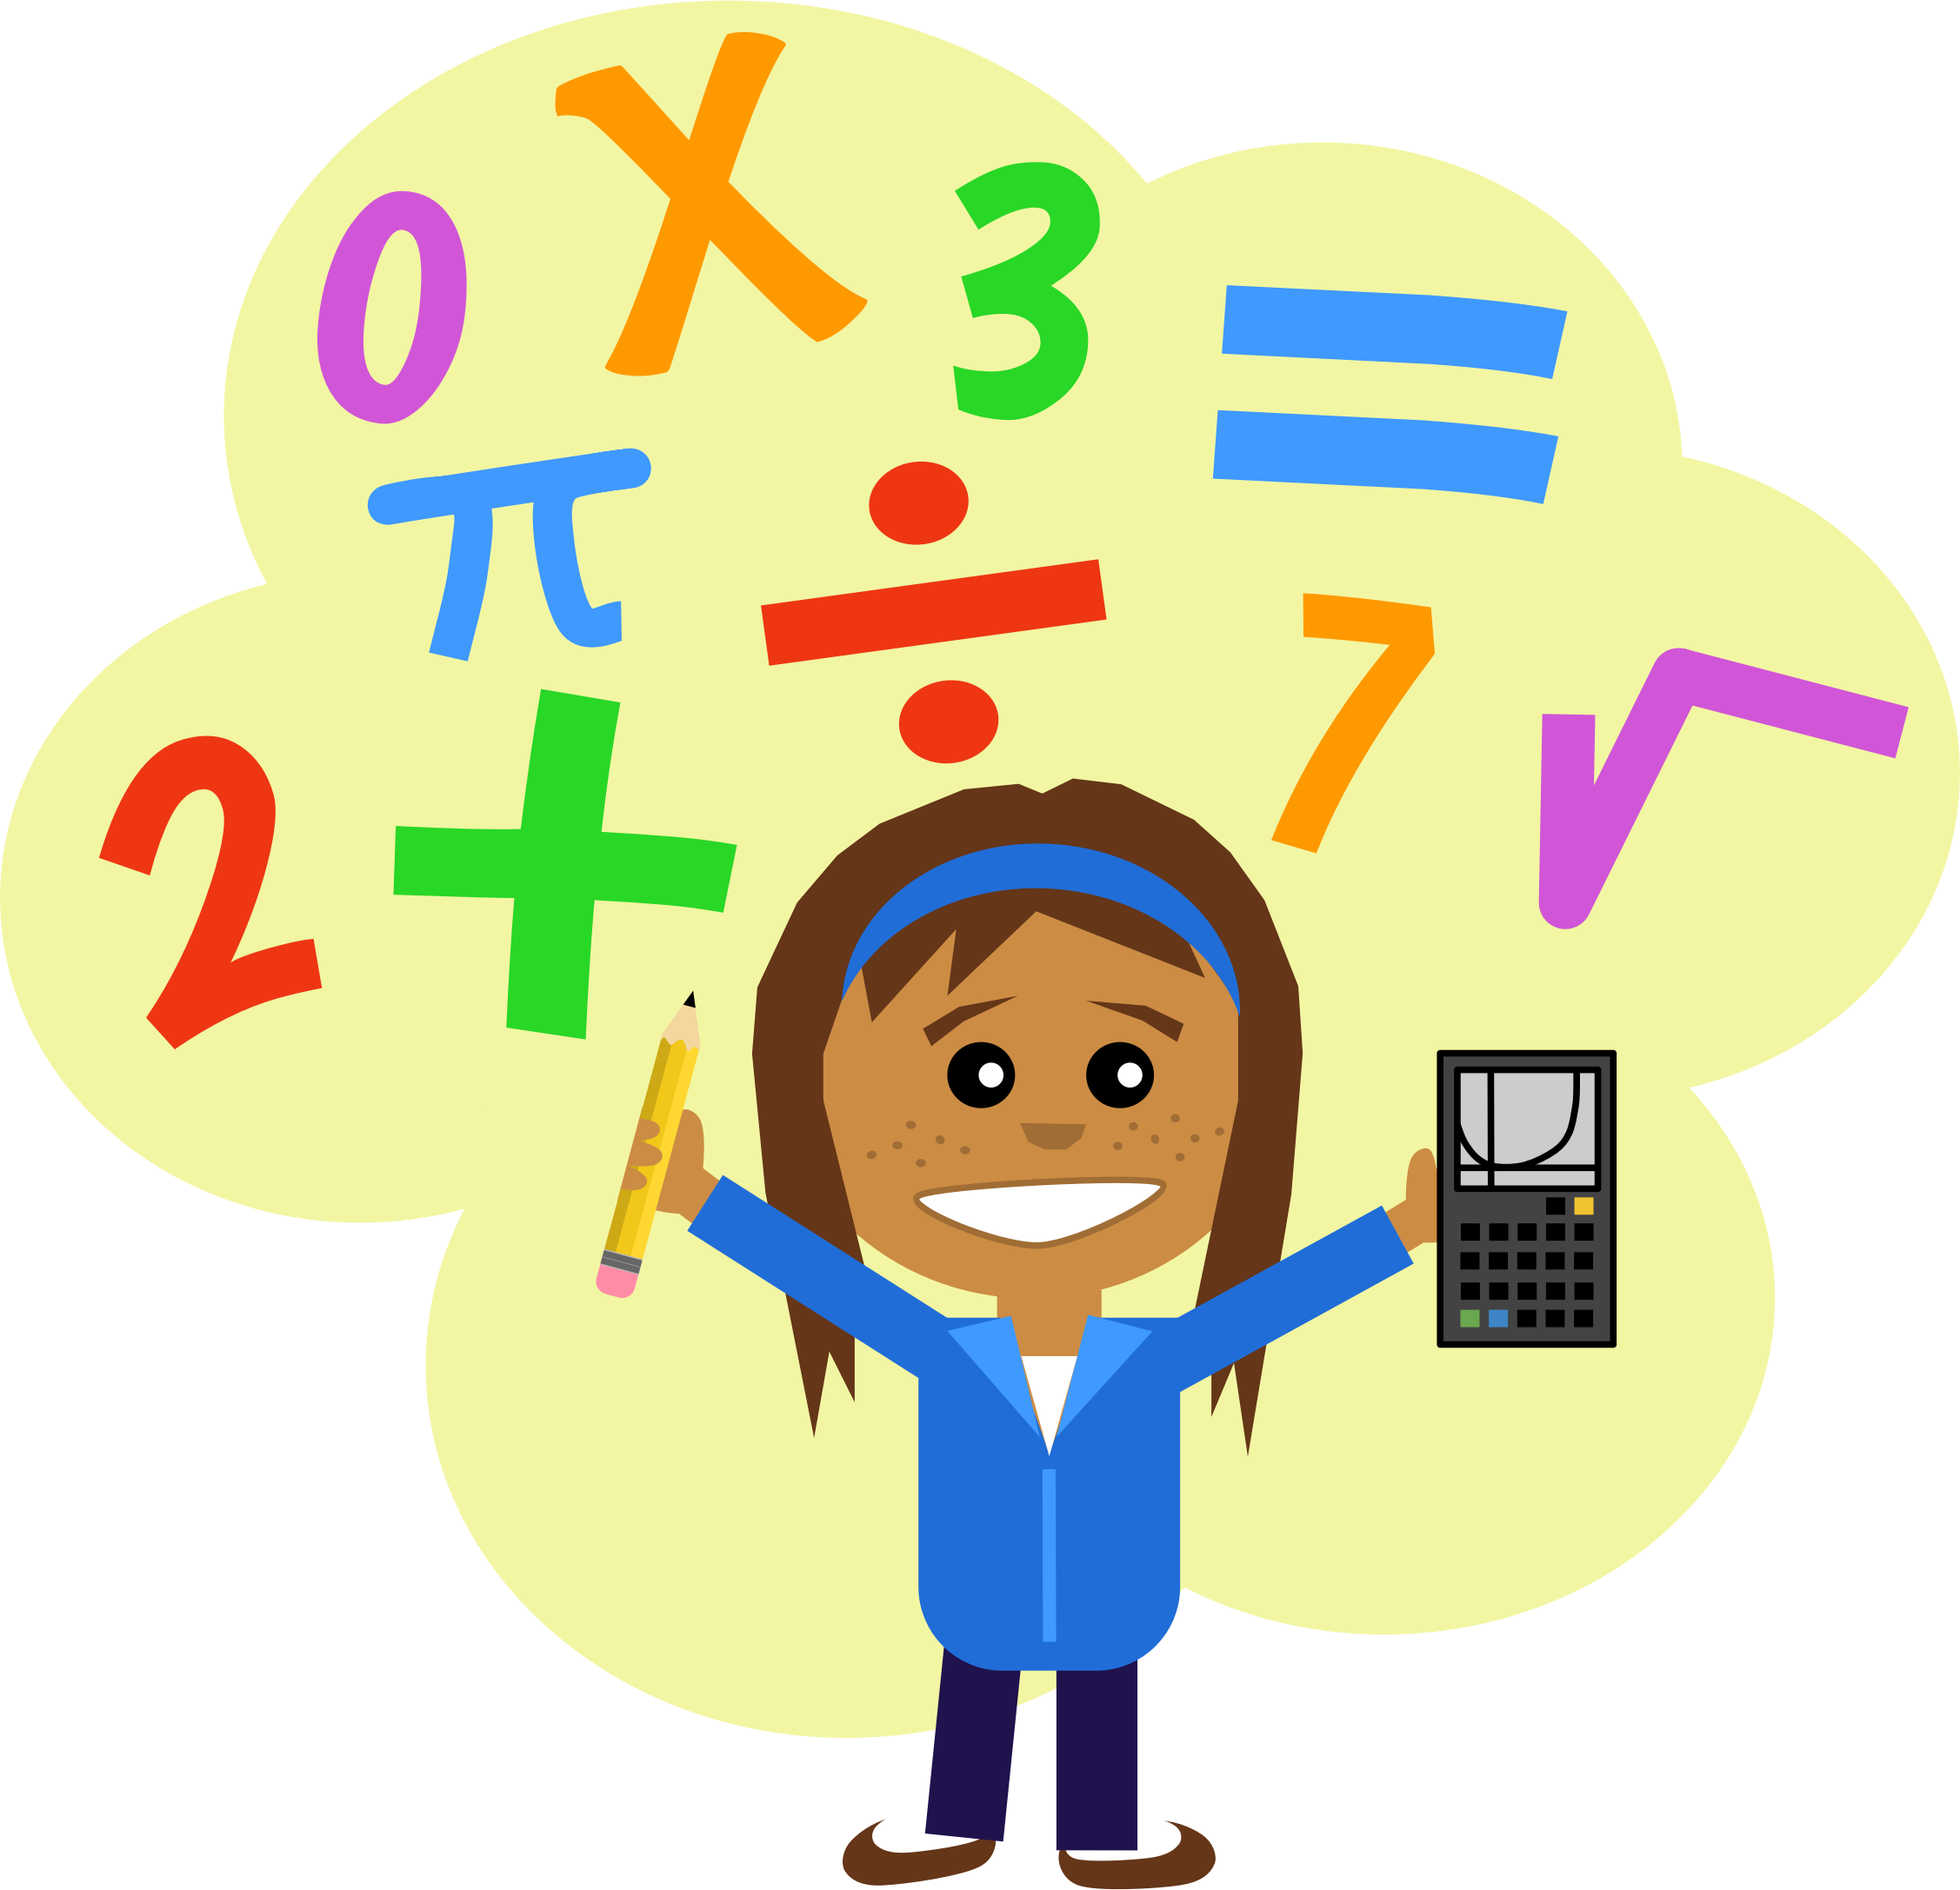 Money clipart math. Girl big image png